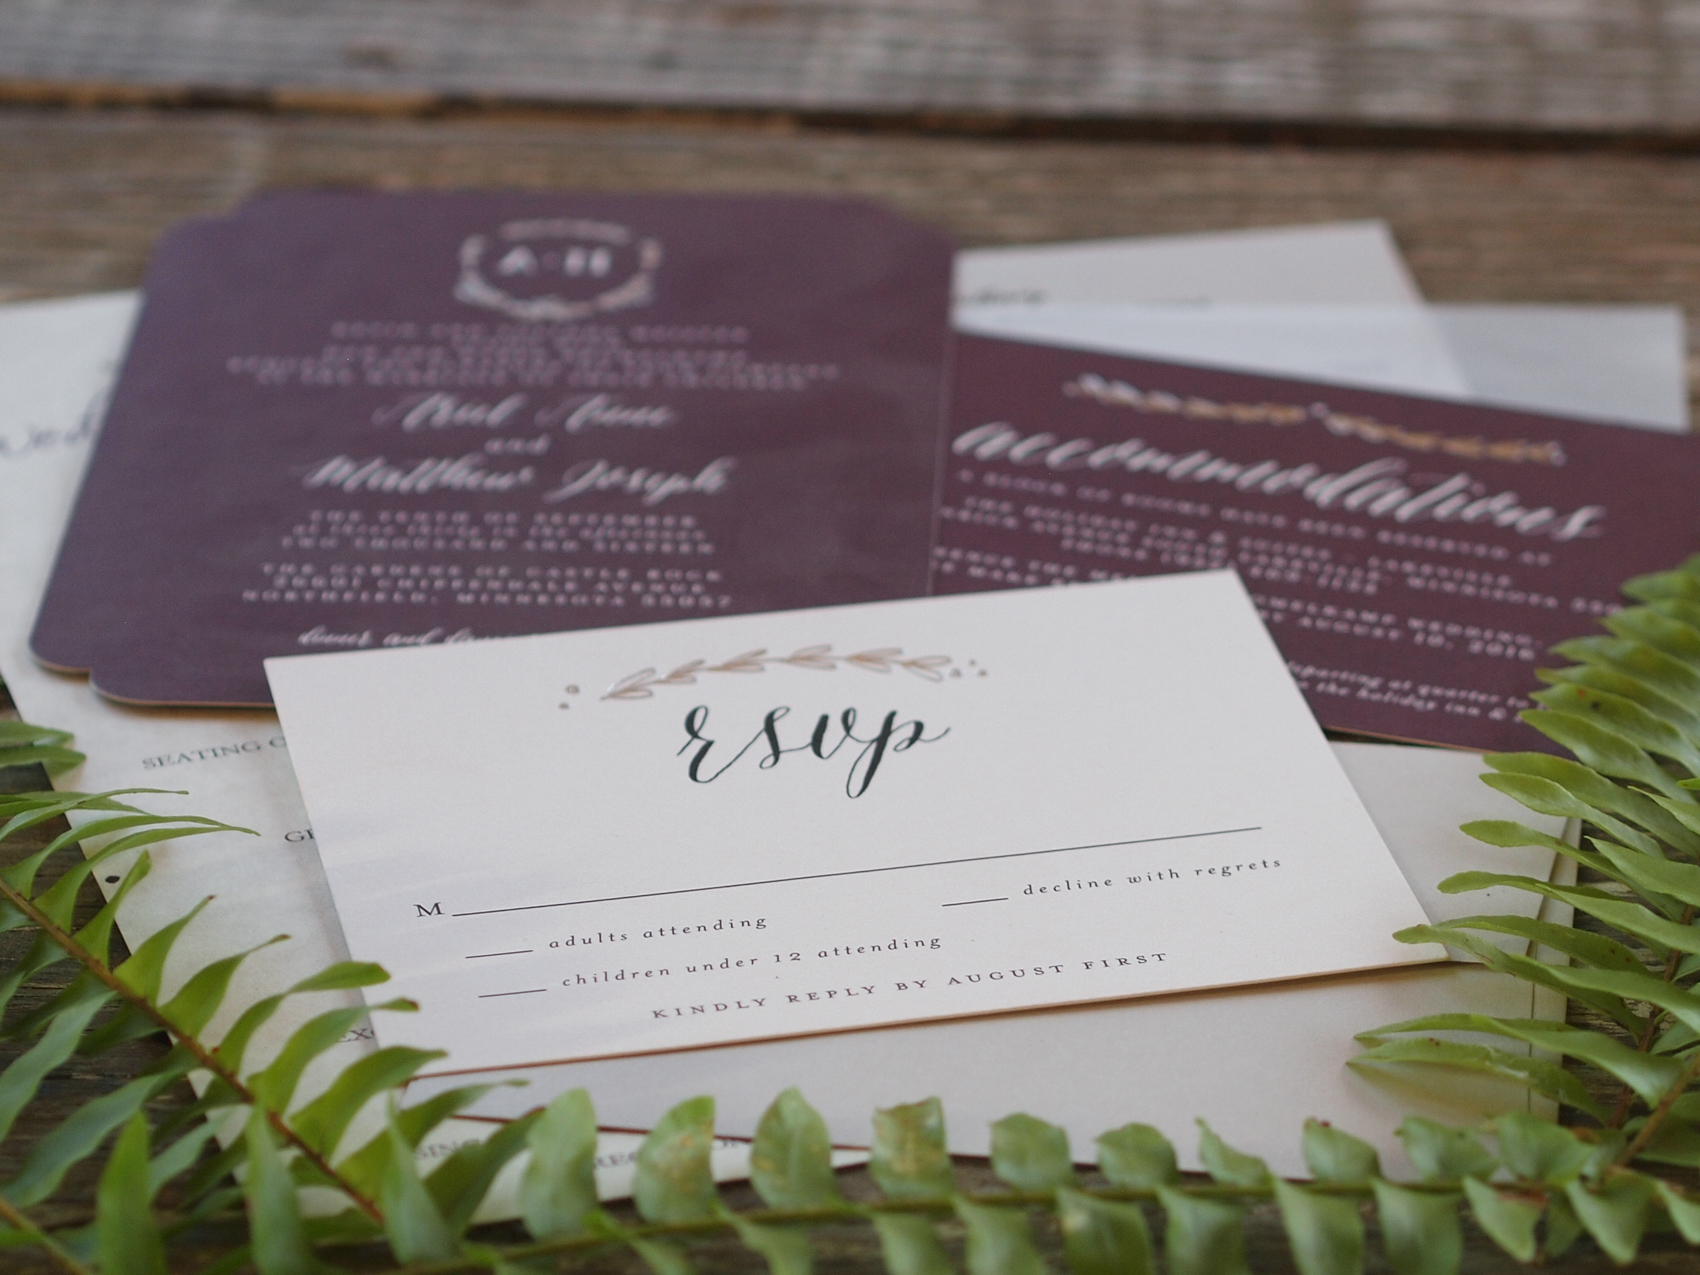 Wedding Invitation Edicate: Wedding Invitation Questions